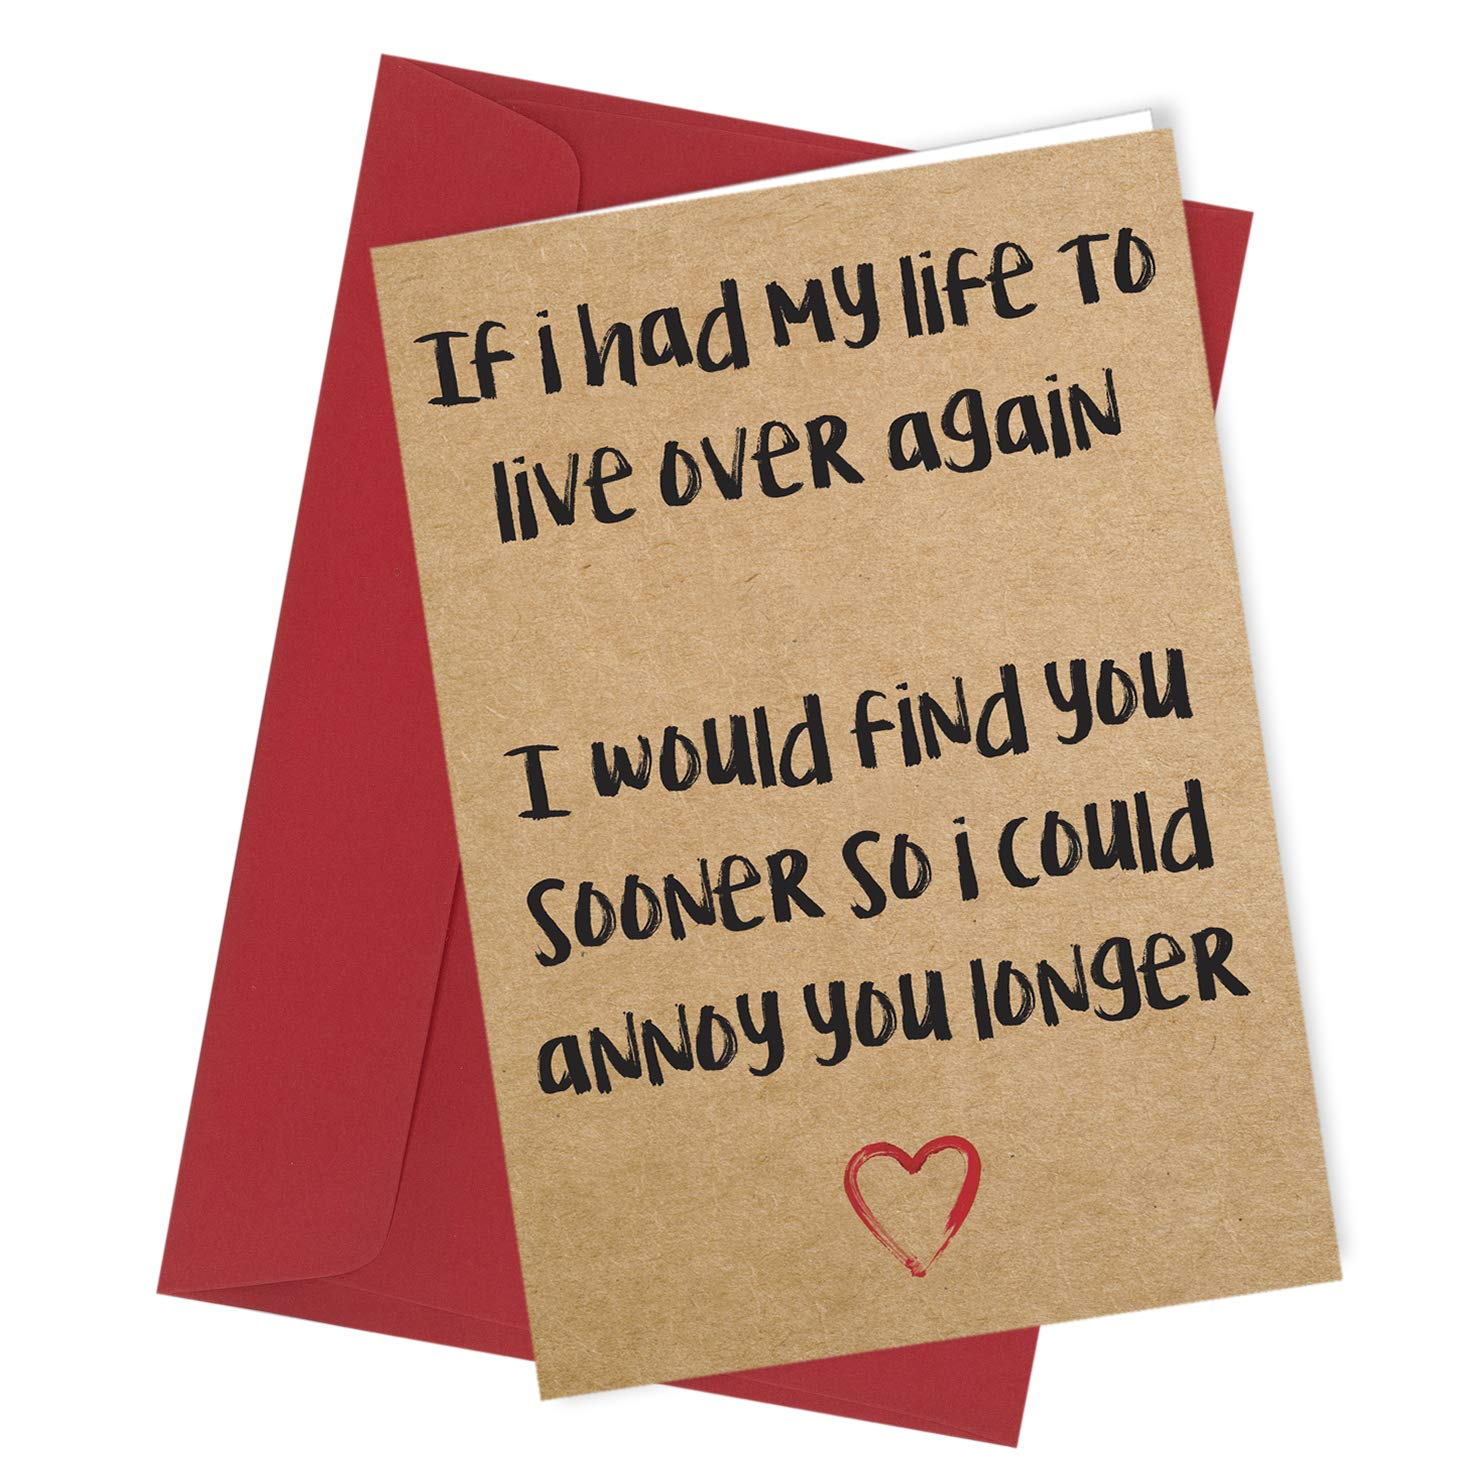 #278 Husband Wife Partner Annoy You Anniversary Valentines Birthday Christmas Rude Card / Comedy / Rude / Funny / Humour / Birthday / Valentine Card A4 folded to A5 (210 x 148mm when folded) By: Close to the Bone Special Days